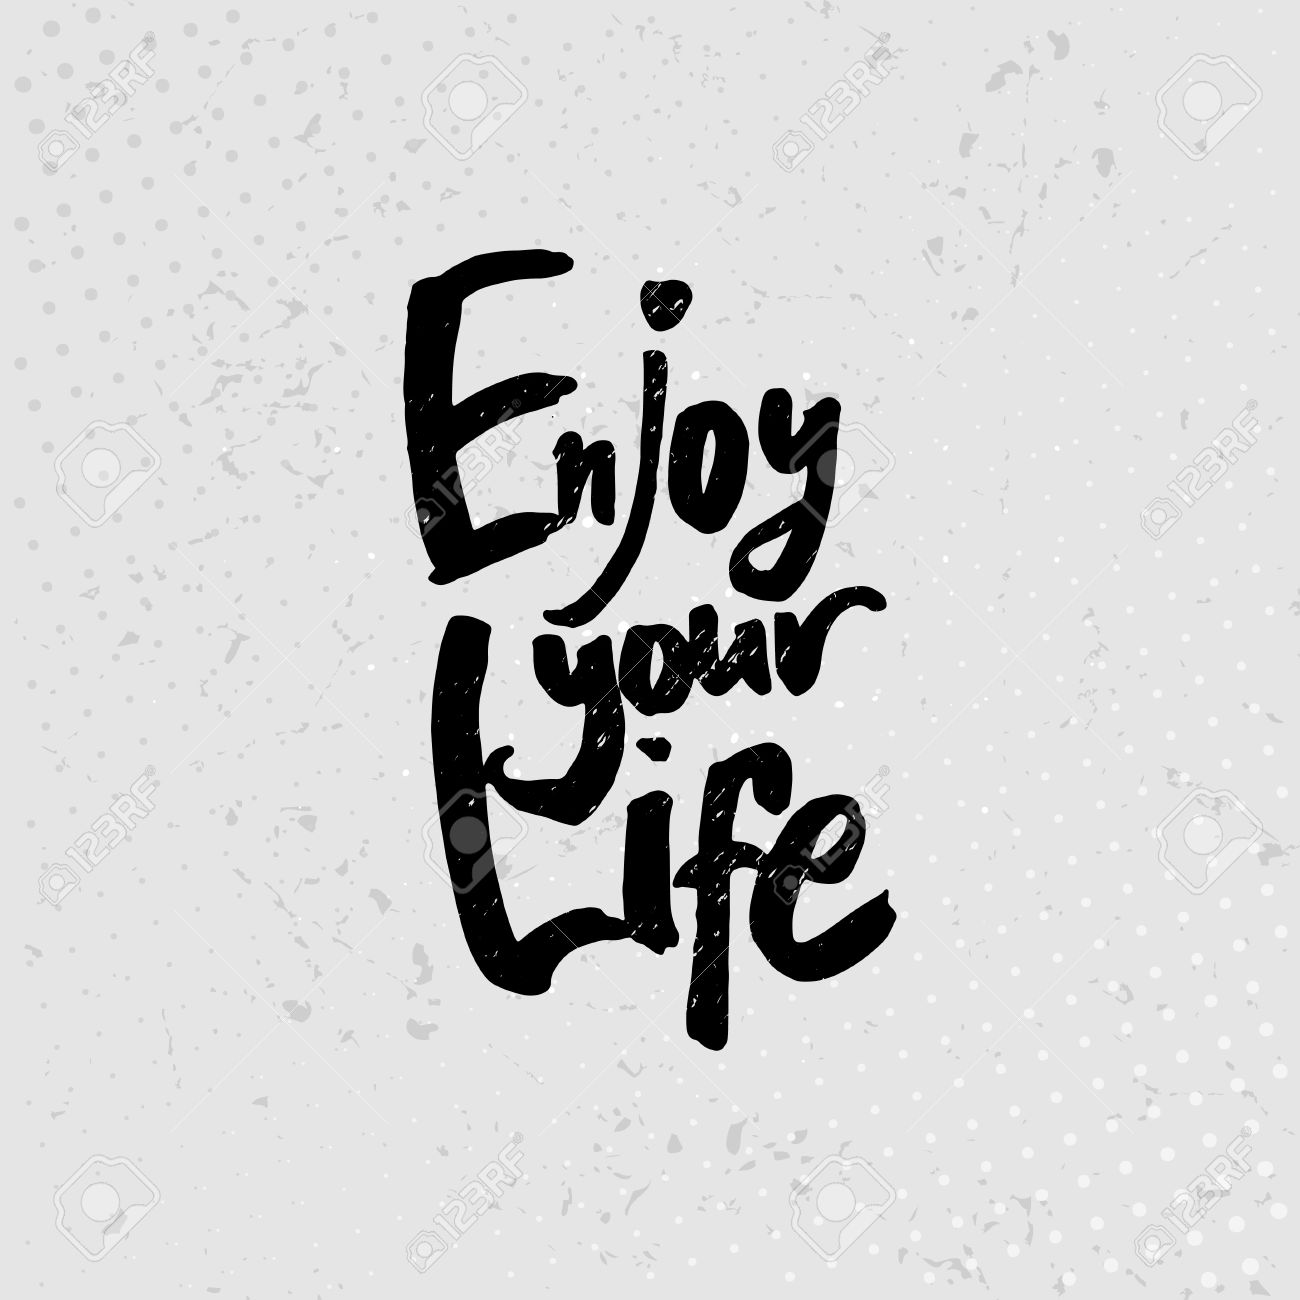 Free Life Quotes Enjoy Your Life  Hand Drawn Quotes Black On Grunge Background